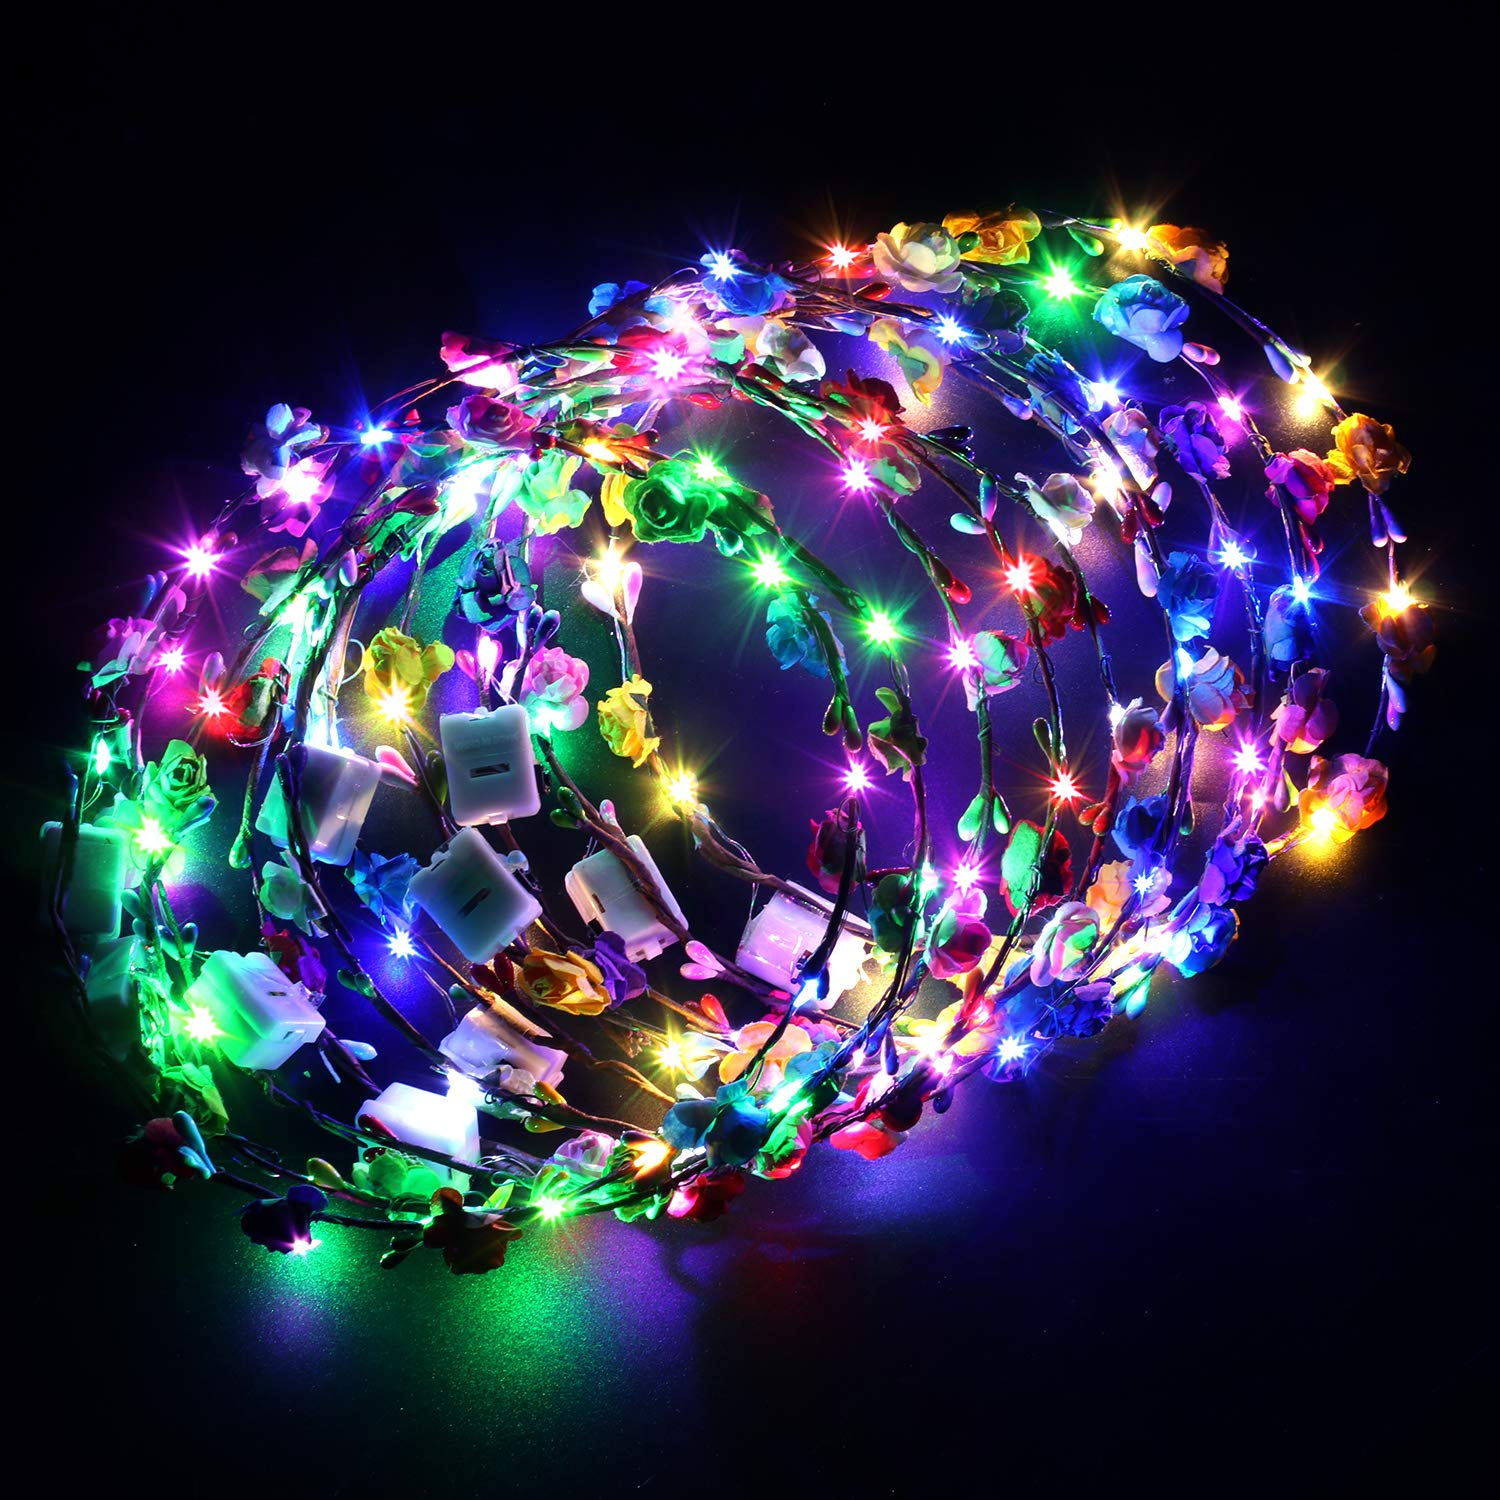 Fansport LED Flower Wreath Light Up Flower Headband Luminous LED Flower Crown Floral Head Crown for Wedding Festival Party Vacation Photography Props (10Pcs)